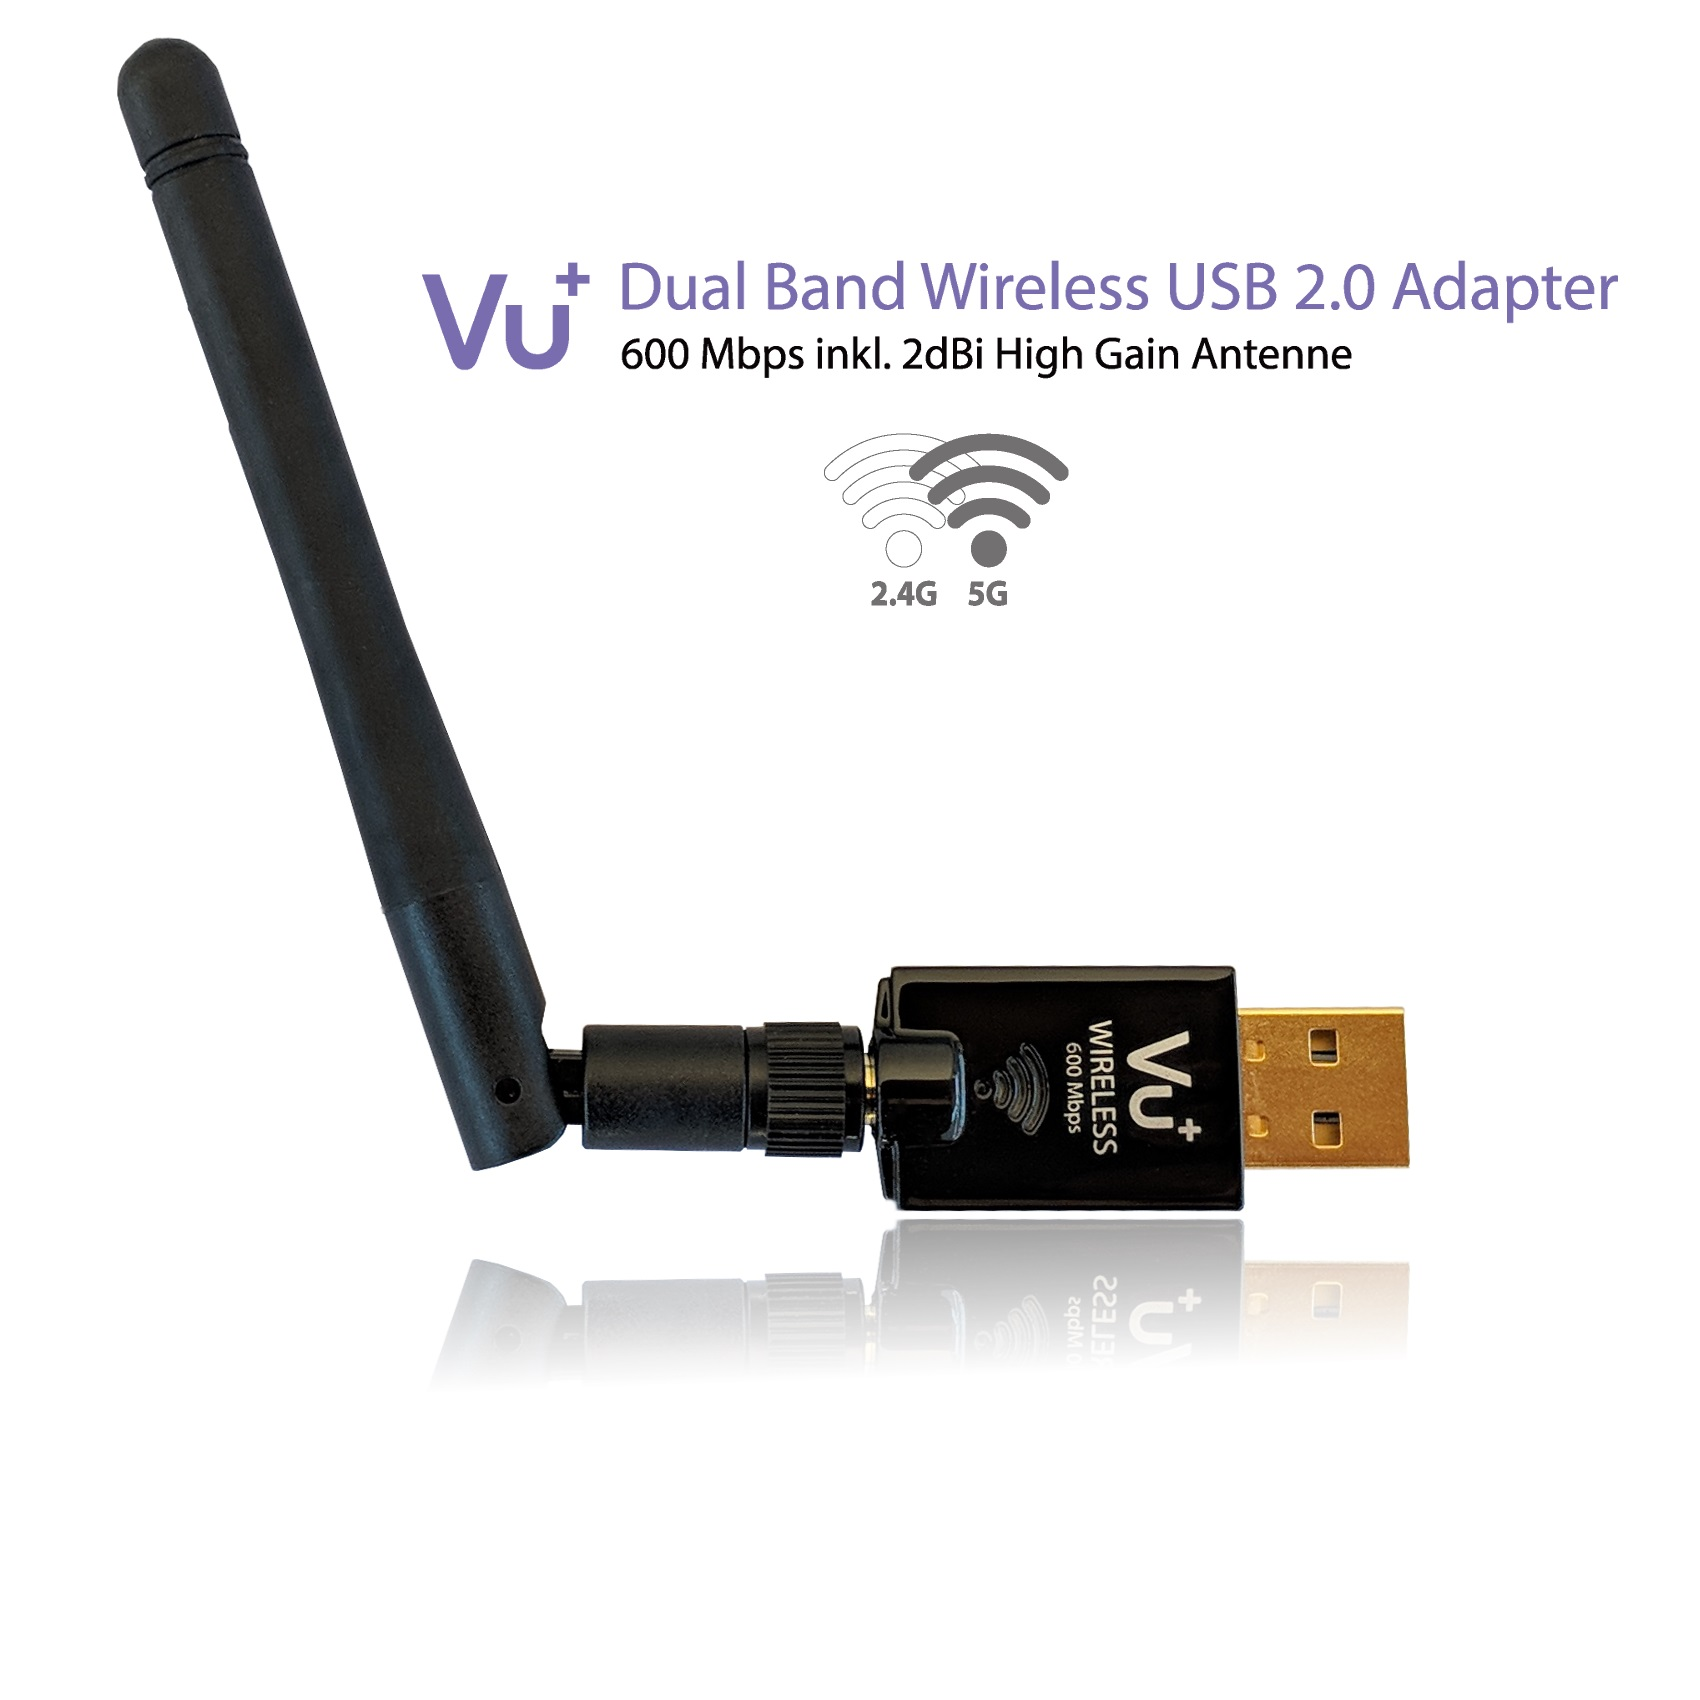 VU+ Dual Band Wireless USB 2.0Adapter 600Mbps inkl Antenne